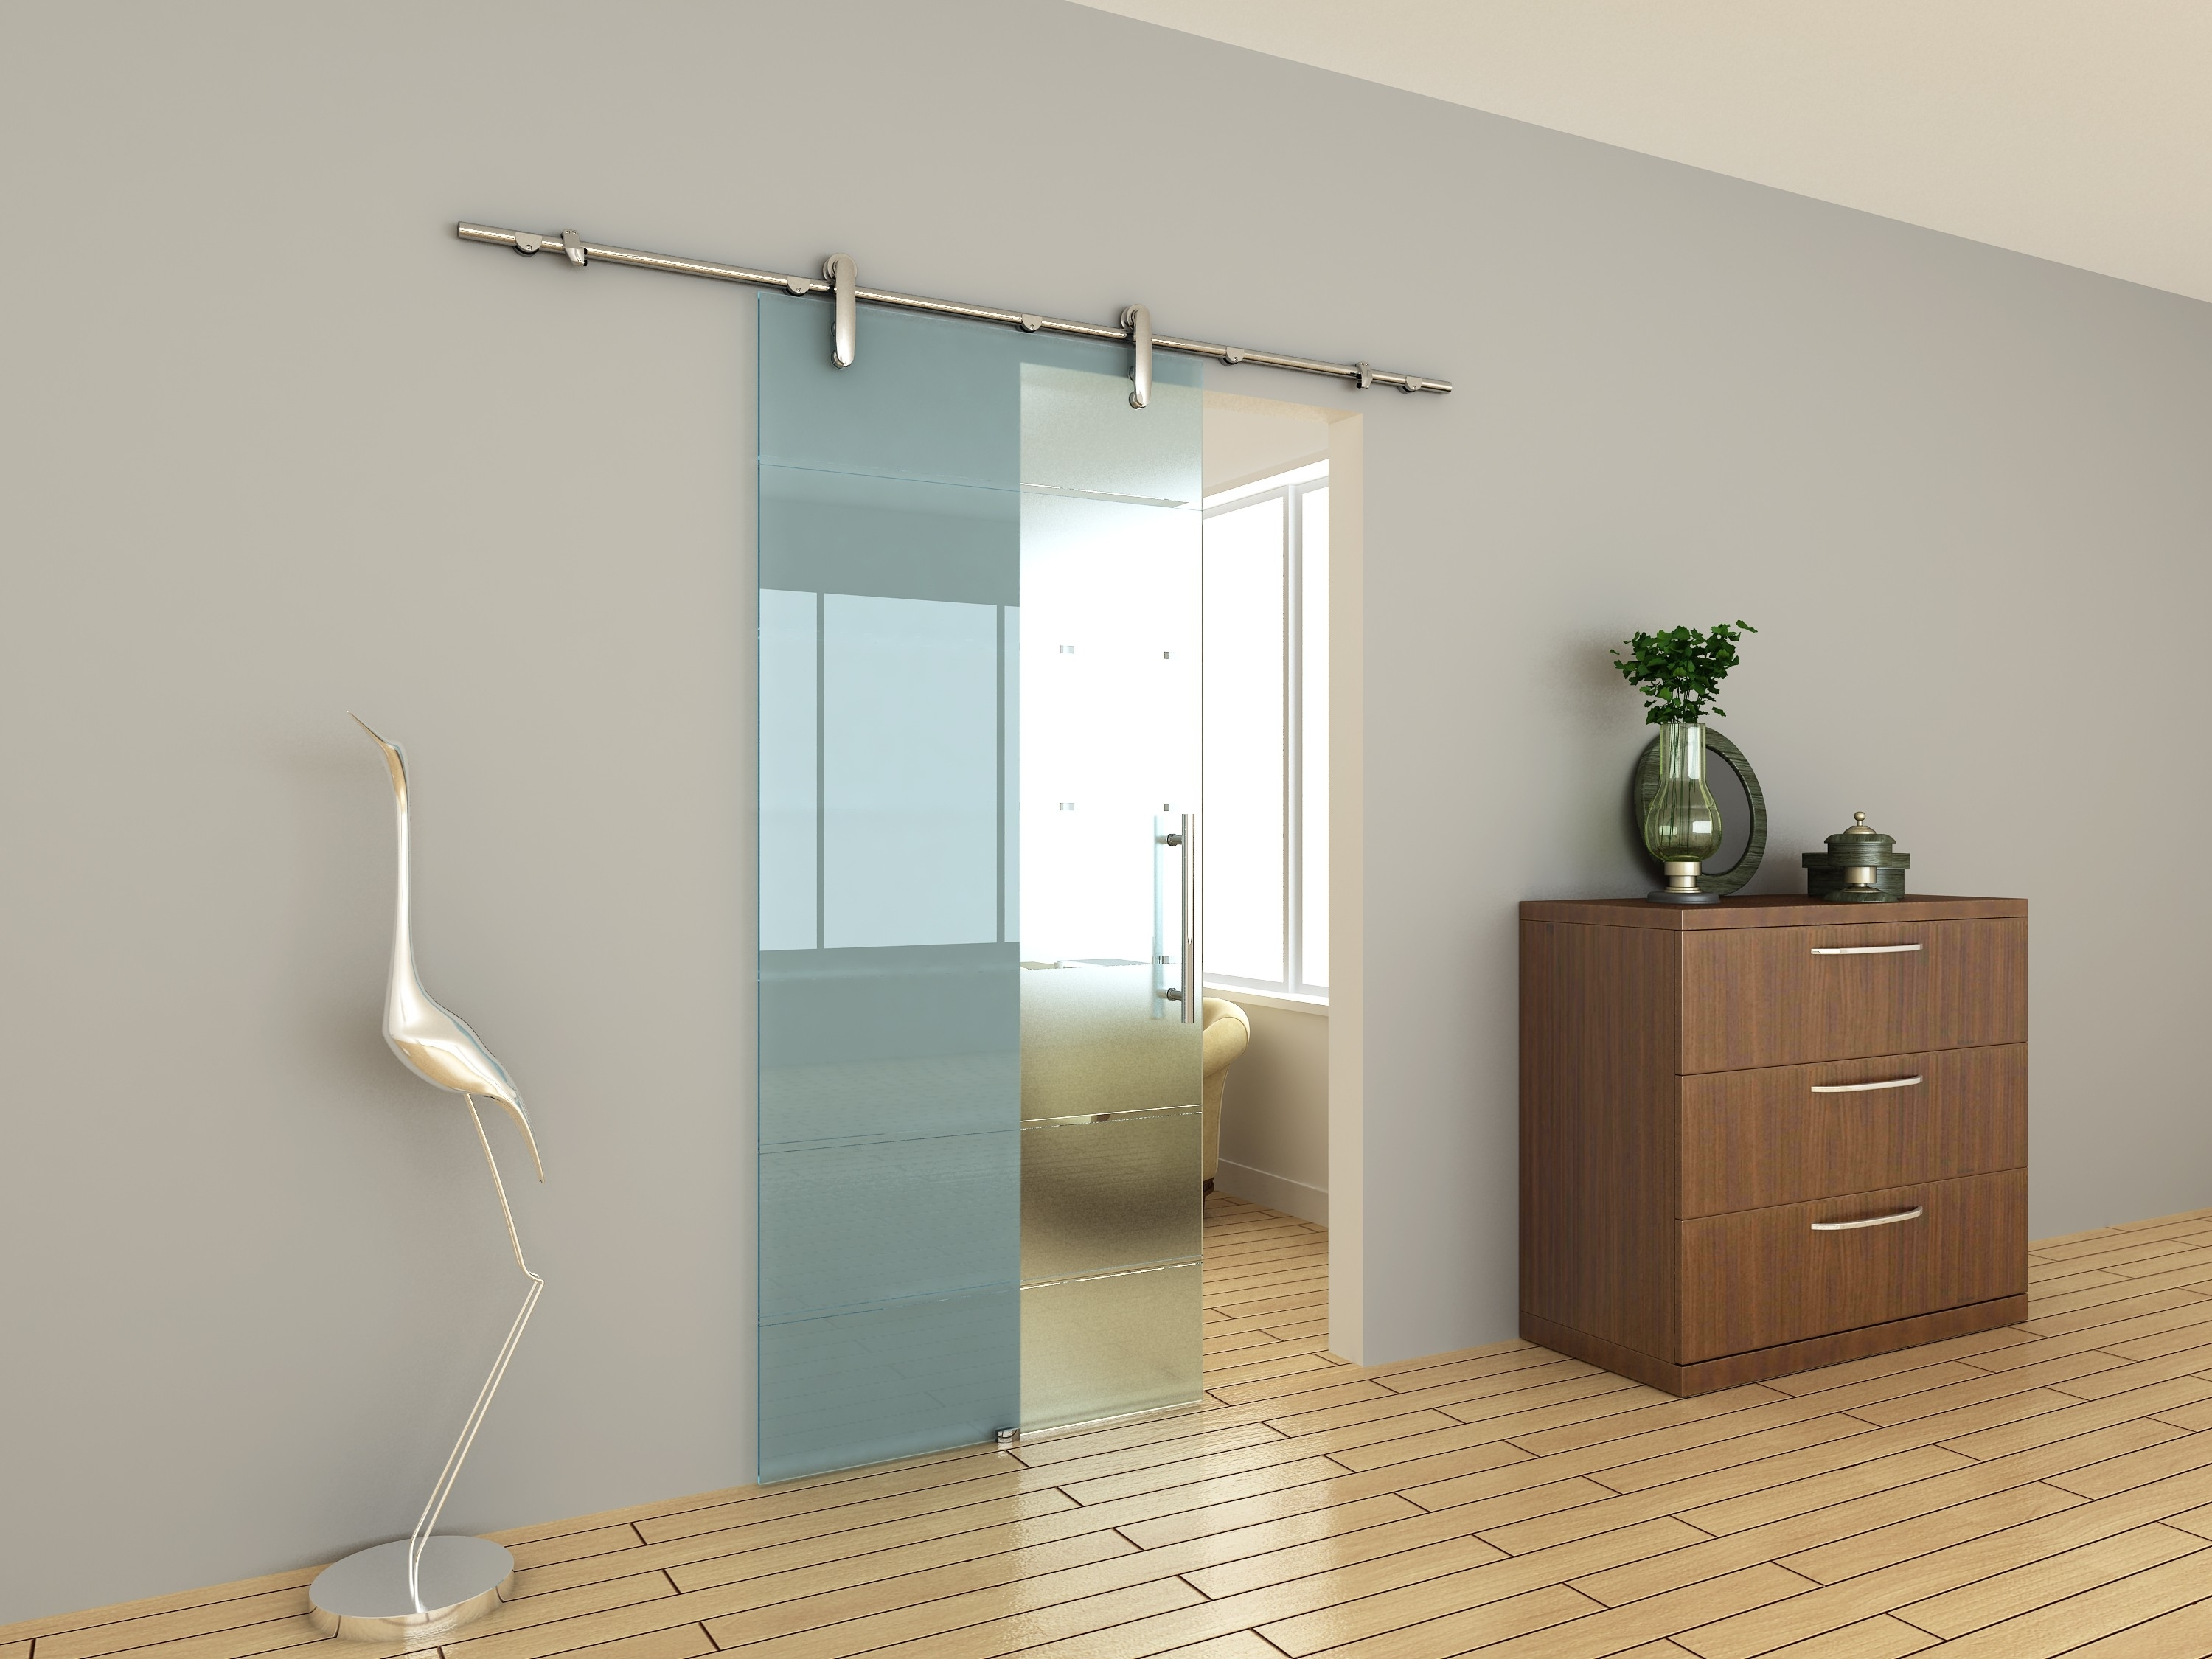 Modern Pocket Door For Bathroomhome design interior sliding glass pocket doors sunroom bath